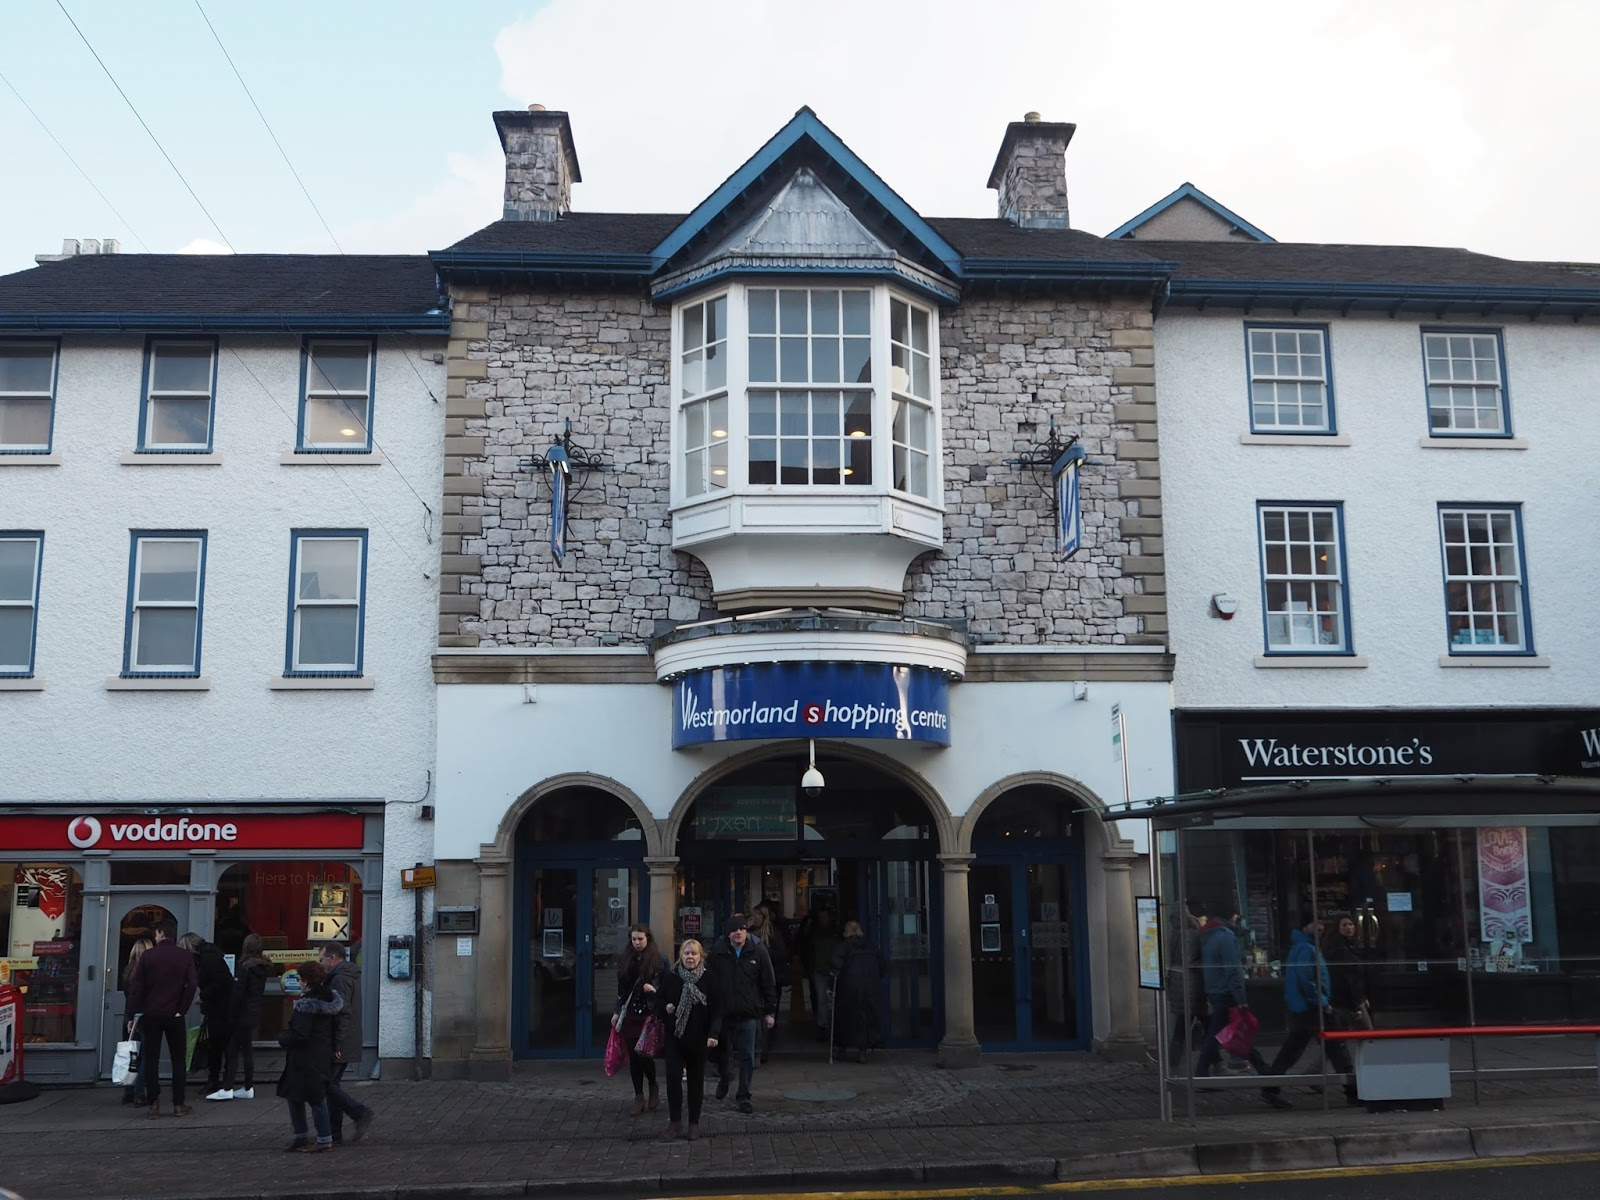 Entrance to Westmorland shopping centre, Kendal